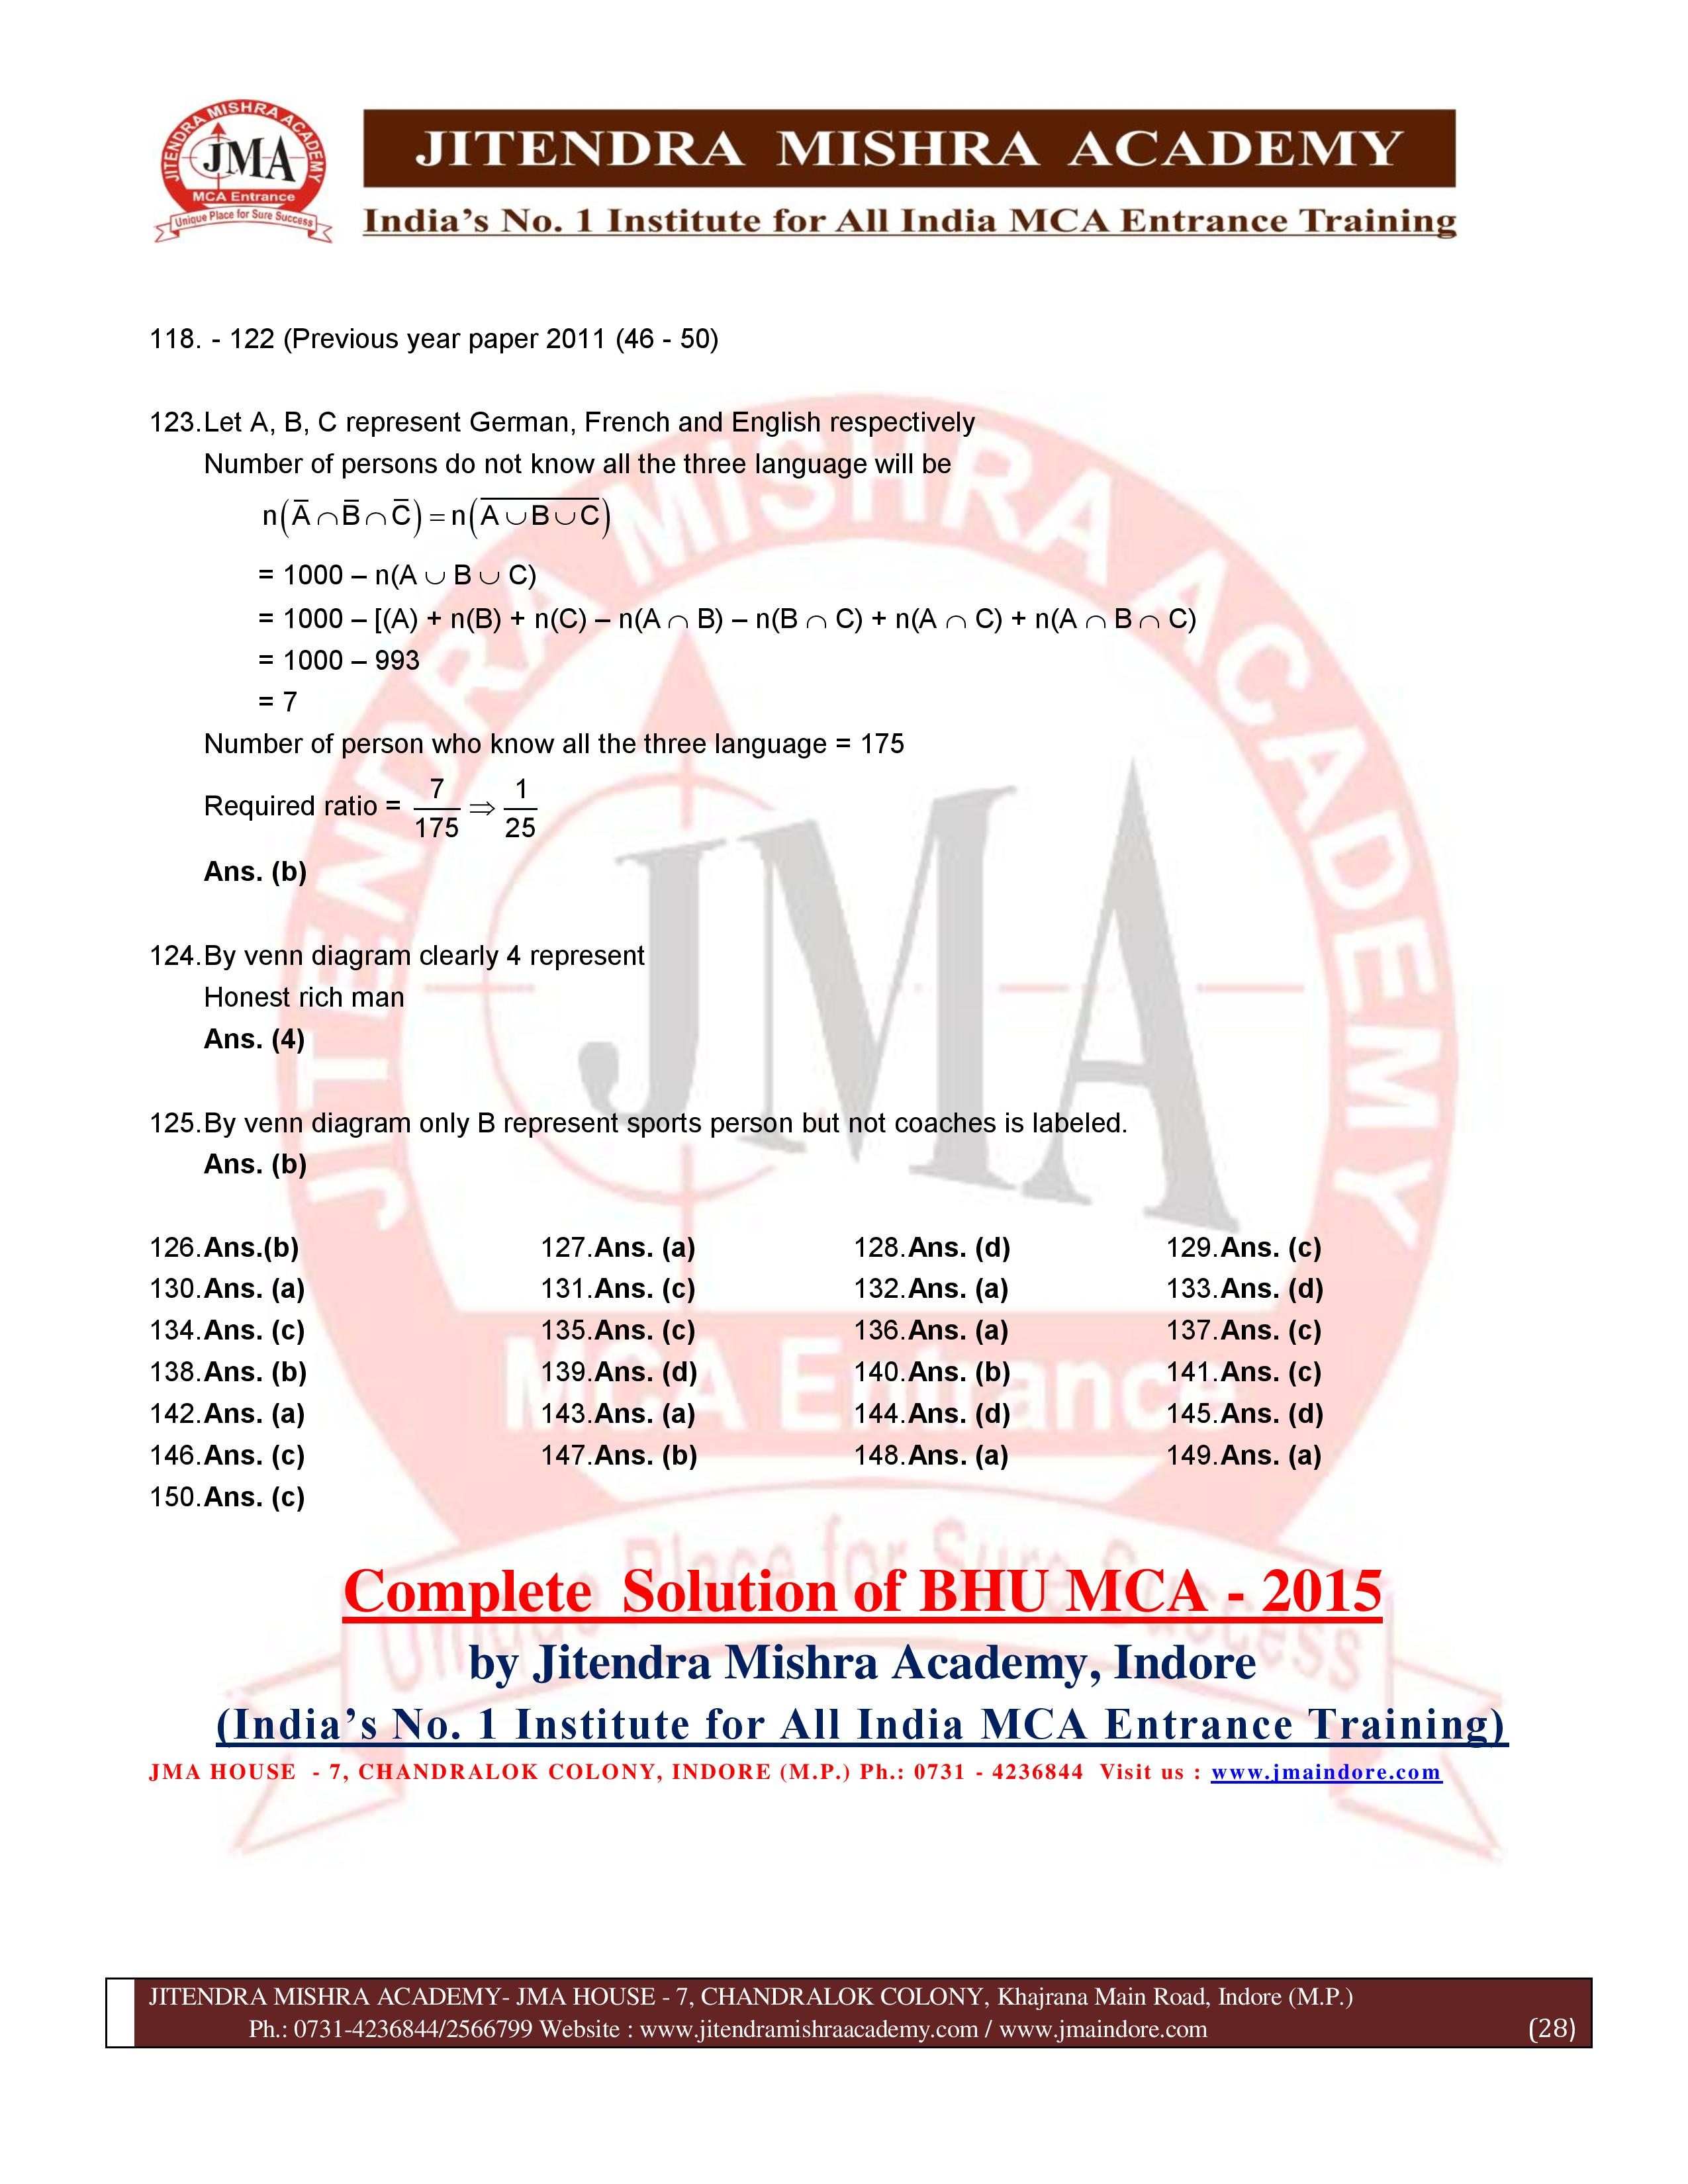 BHU 2015 SOLUTION (SET - 1) (29.06.16)-page-028